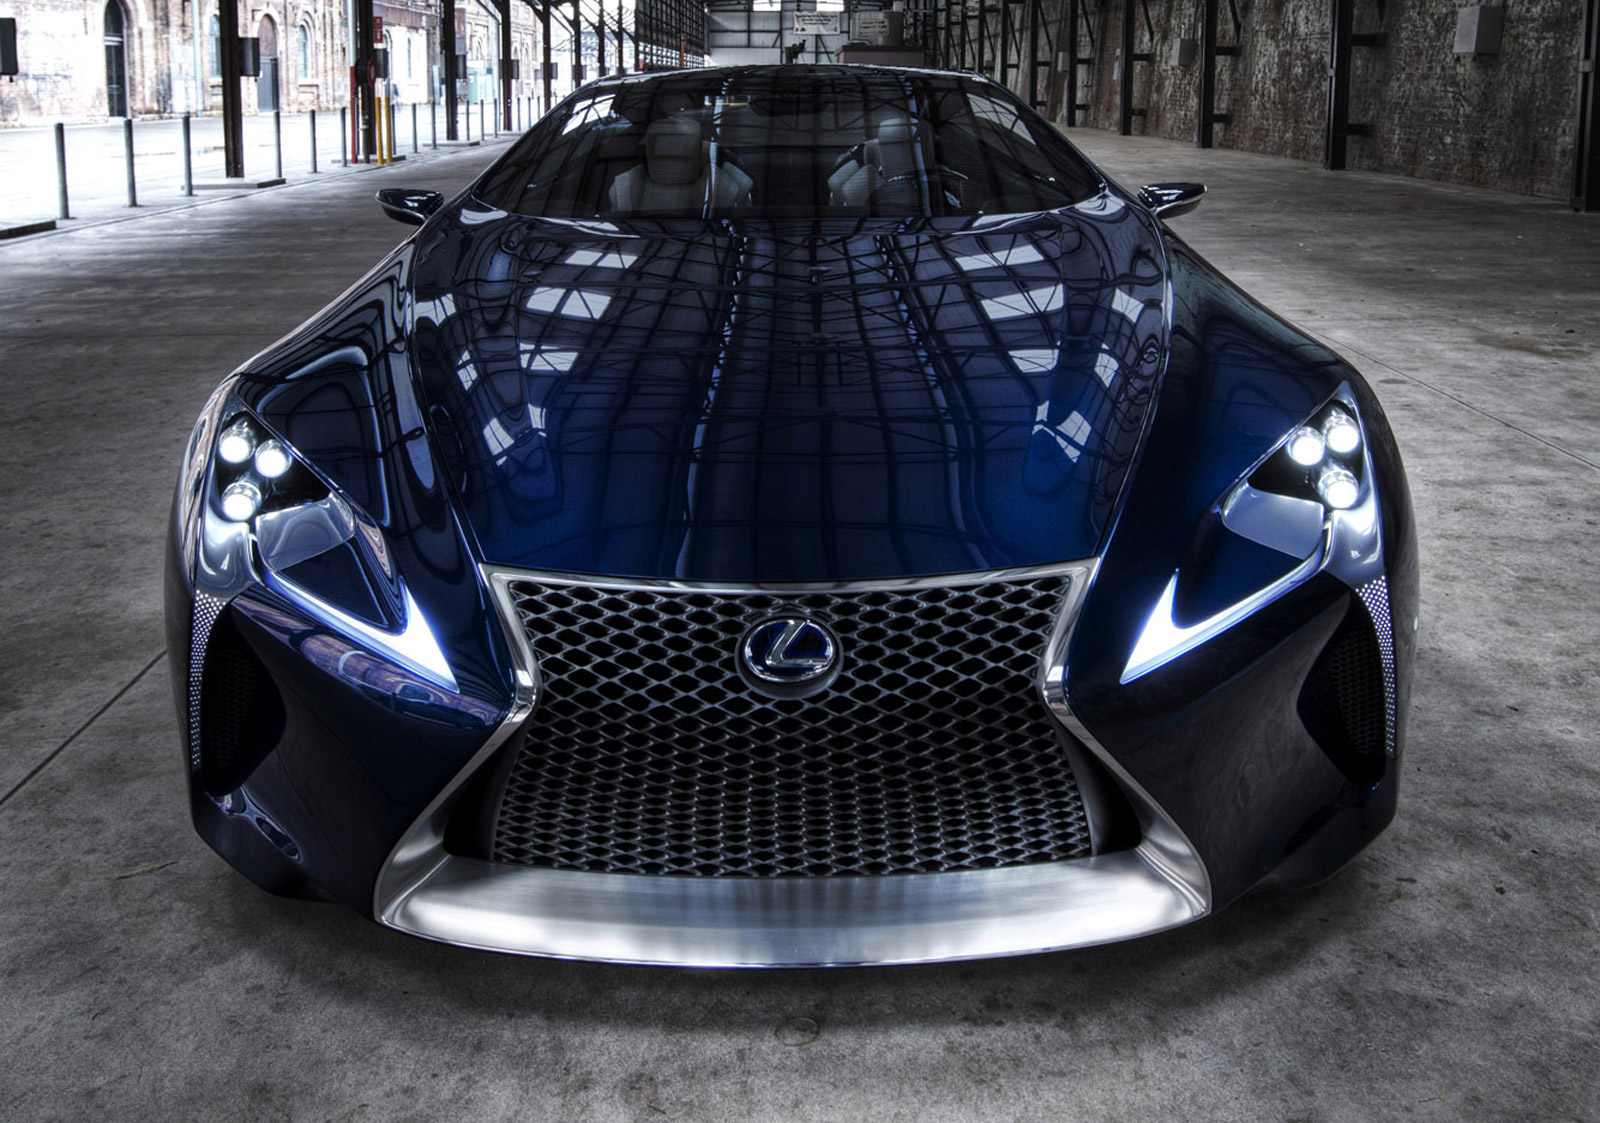 Lc 500 And Lc 500h Names Trademarked Likely Presages